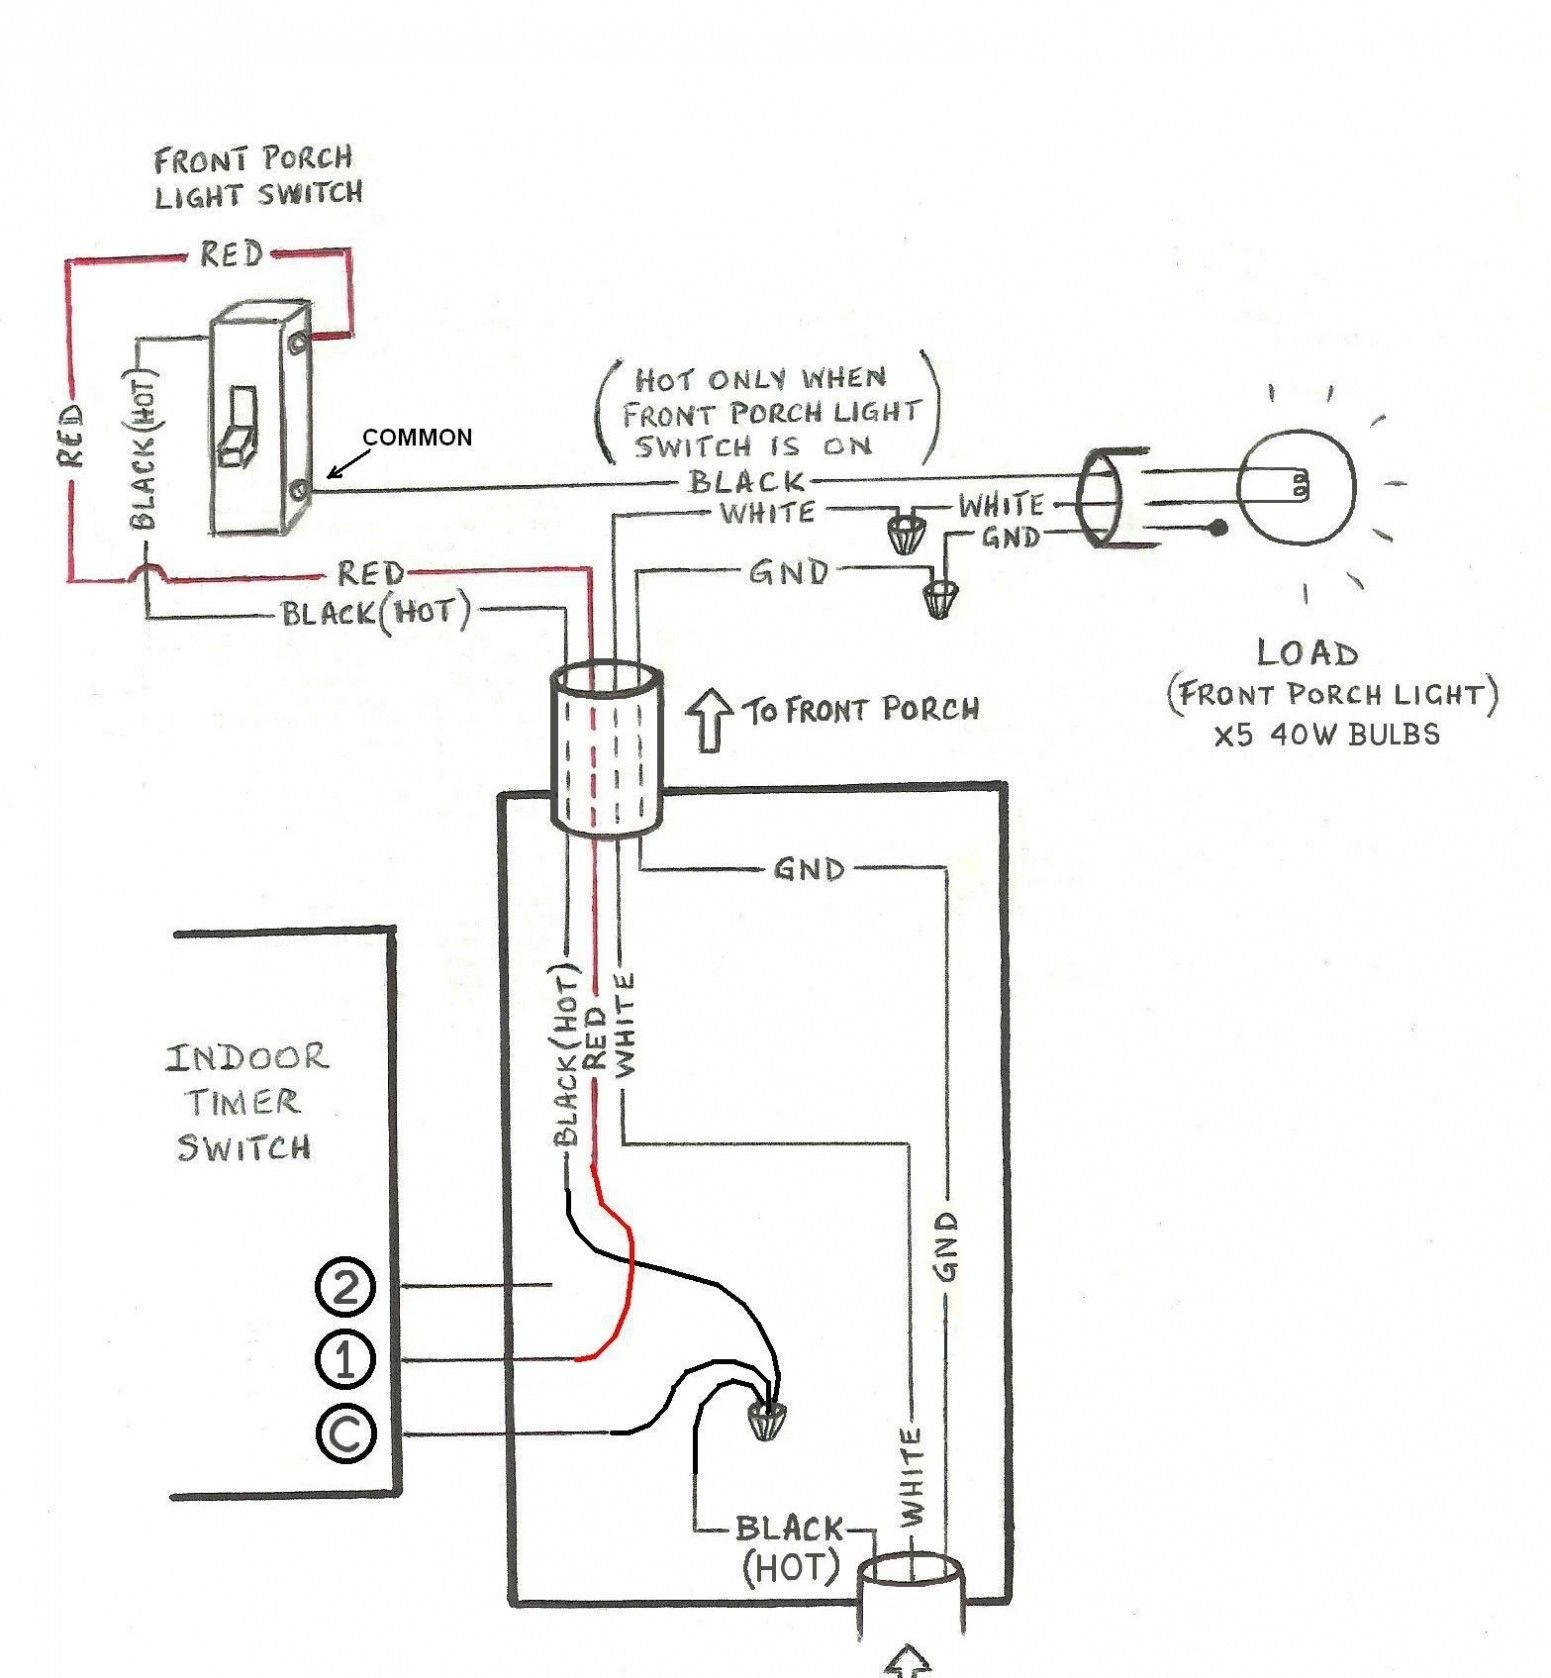 Awesome Wiring Diagram For Four Lights Diagrams Digramssample Diagramimages Wiringdiagramsample Wirin Porch Light Timer Light Switch Wiring Porch Lighting